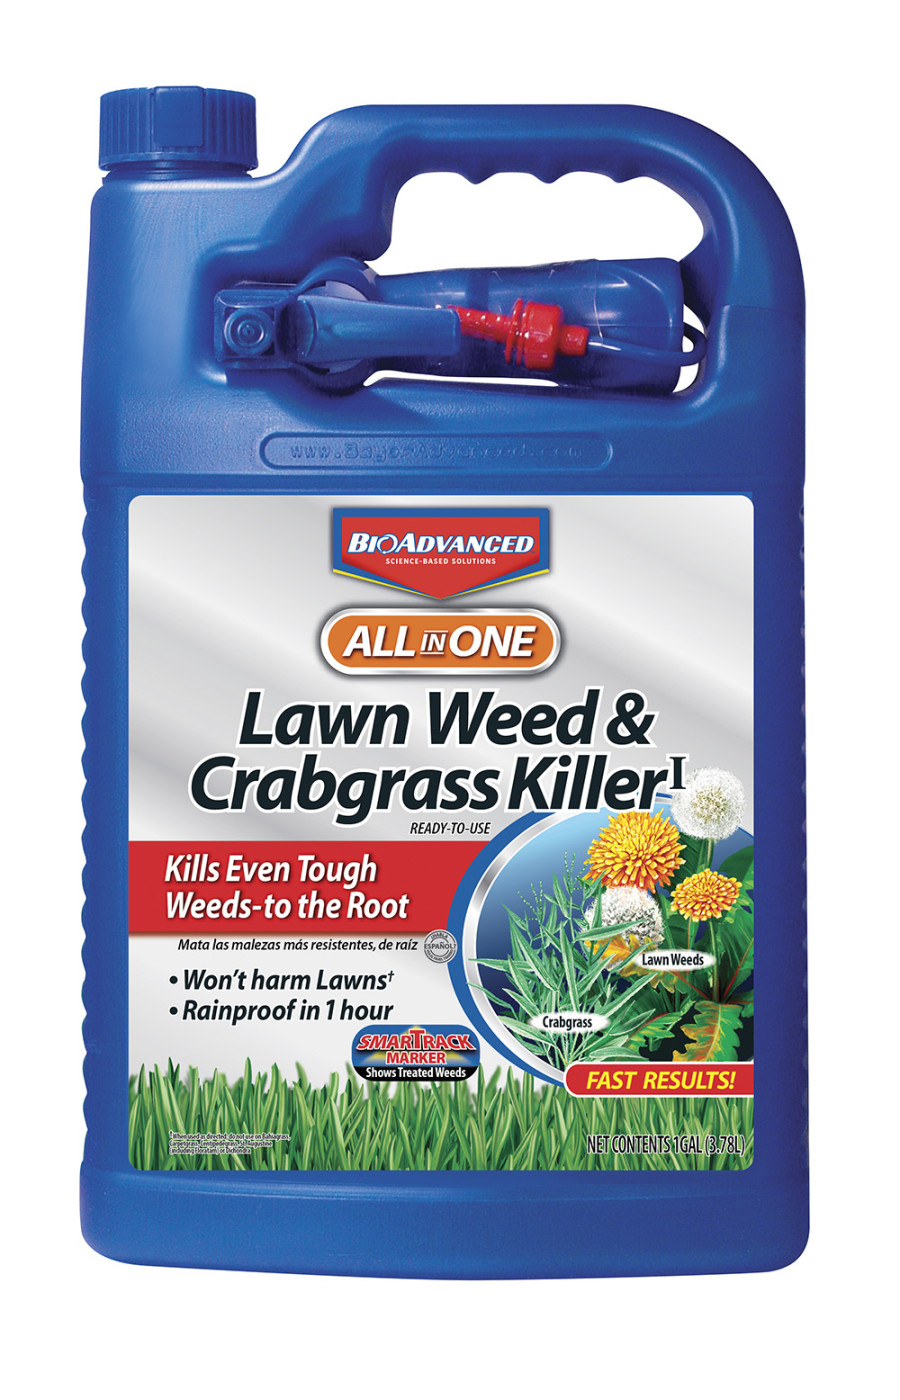 BioAdvanced All In One Lawn Weed & Crabgrass Killer Ready to Use 4ea/1 gal